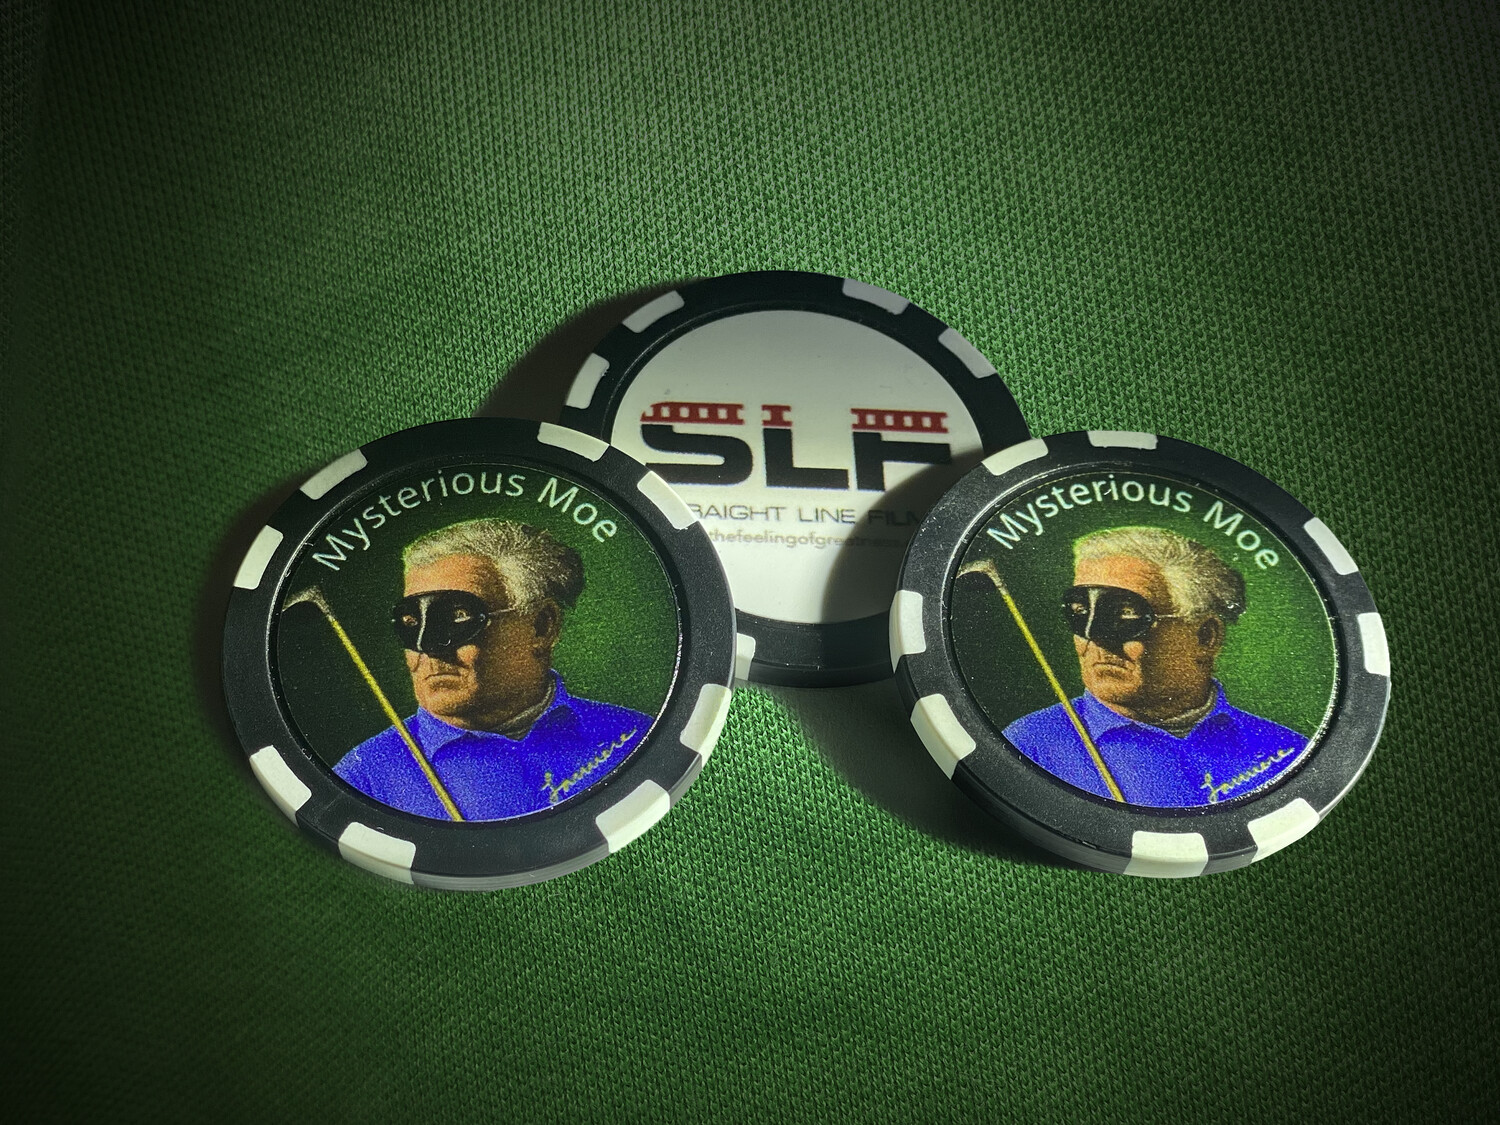 Mysterious Moe Poker Chip - 3 Pack